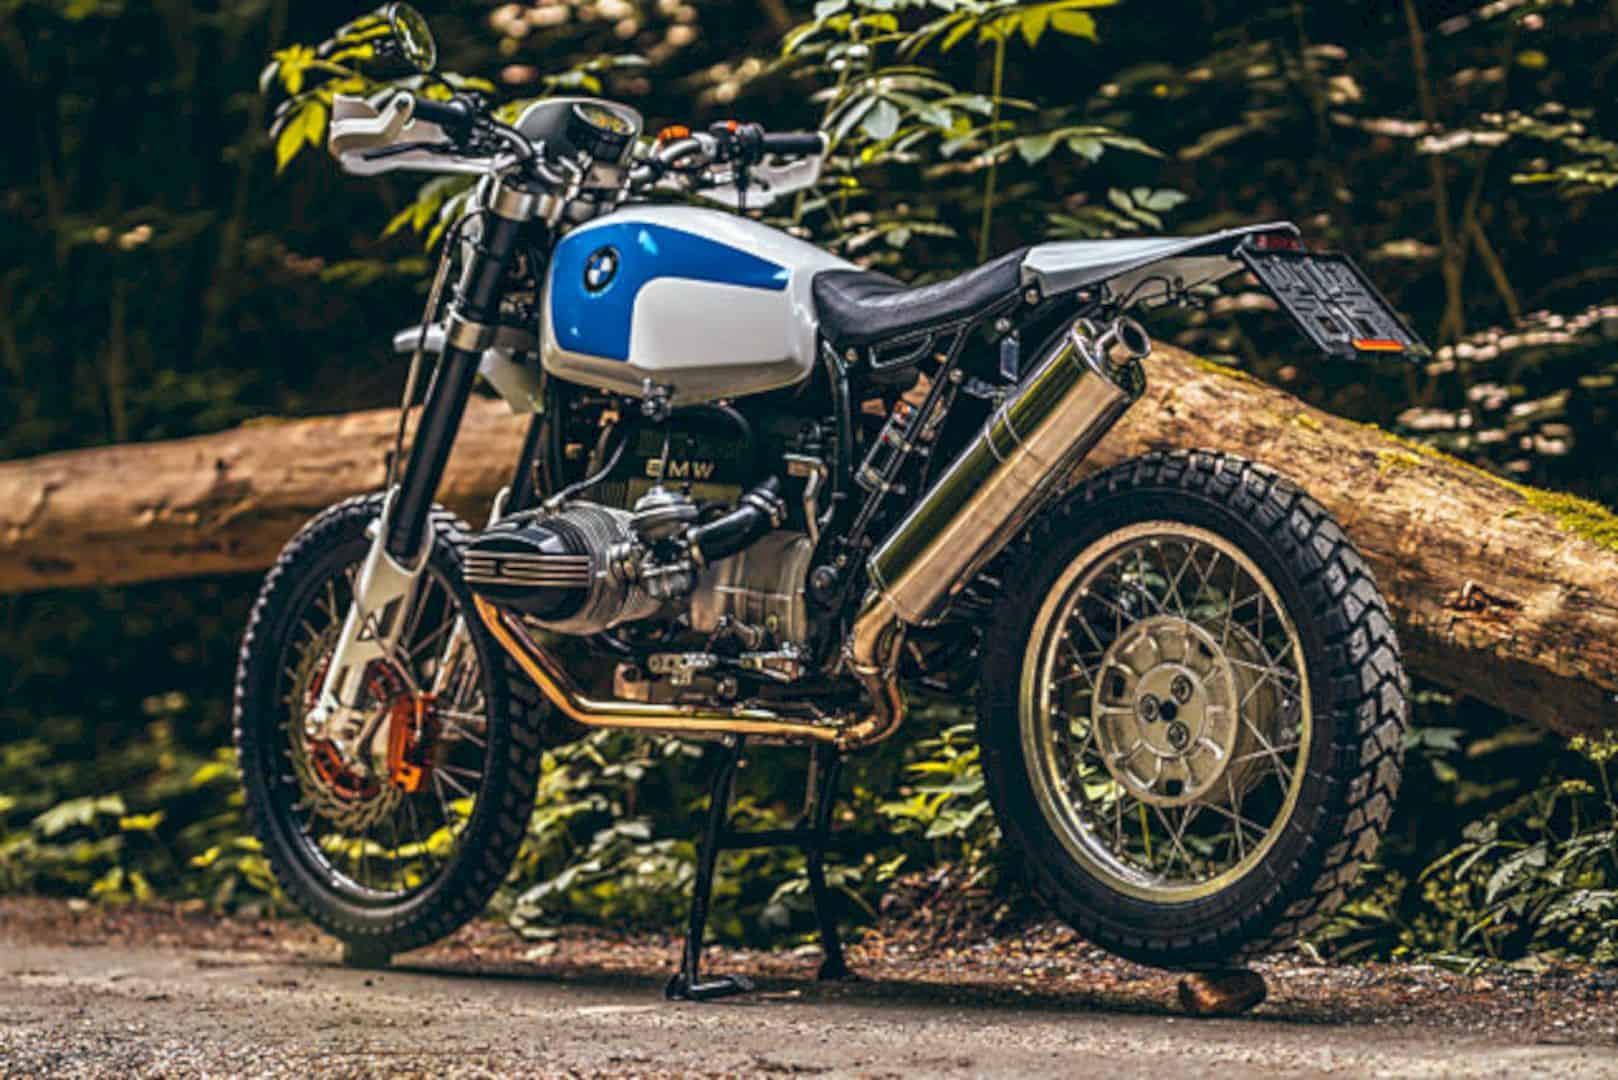 Bmw R80gs Enduro By Nct Motorcycles 7